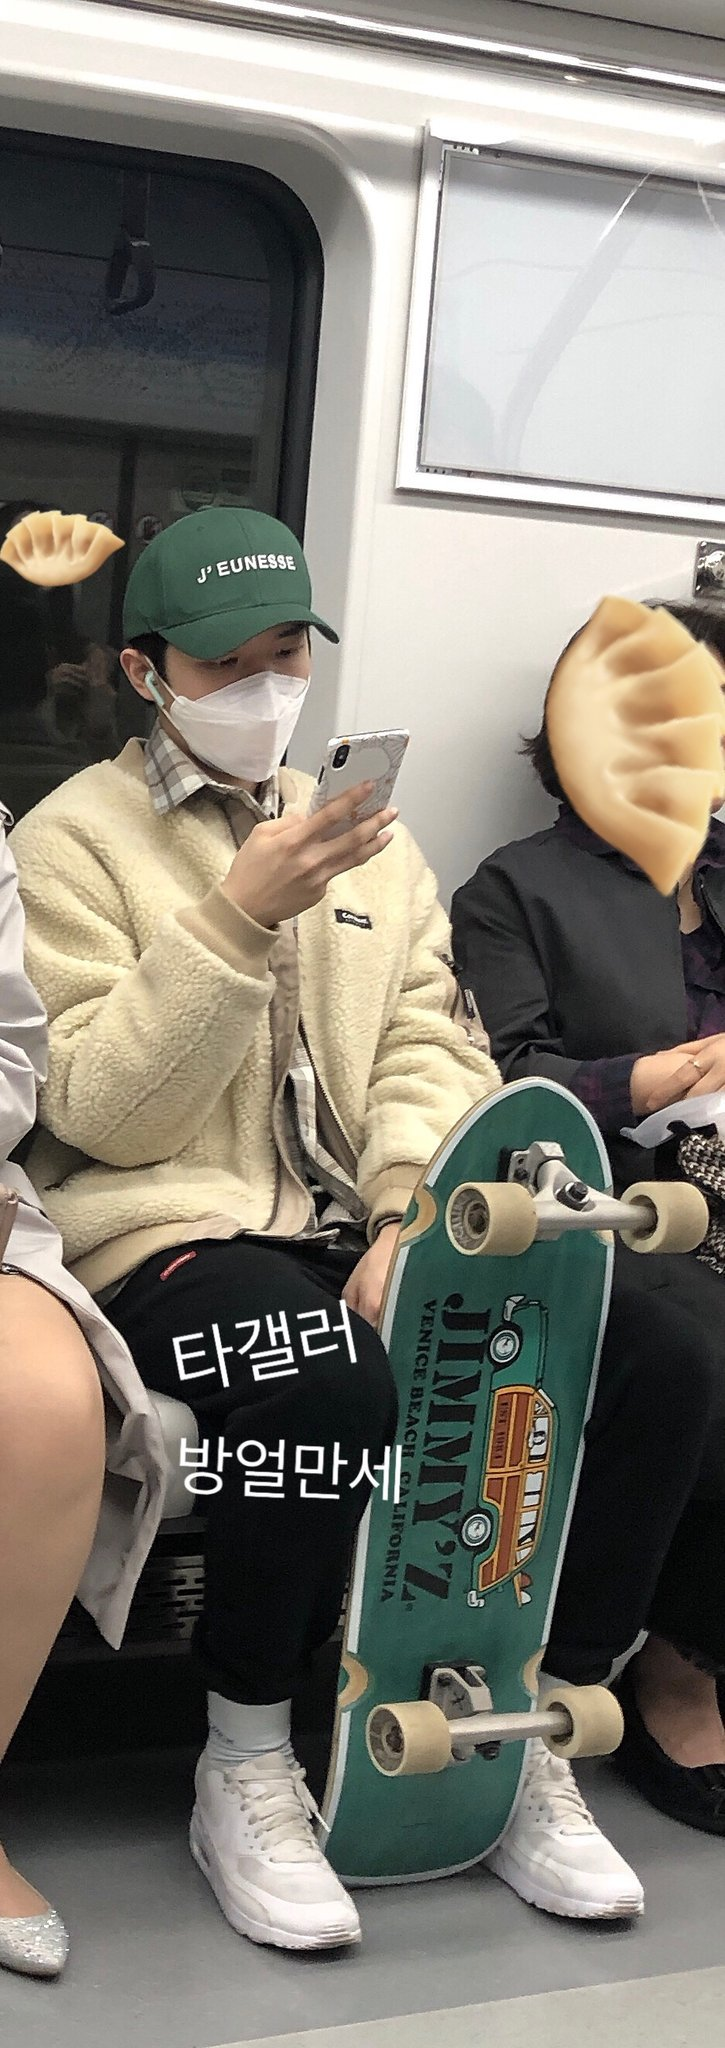 jaehwan subway 3